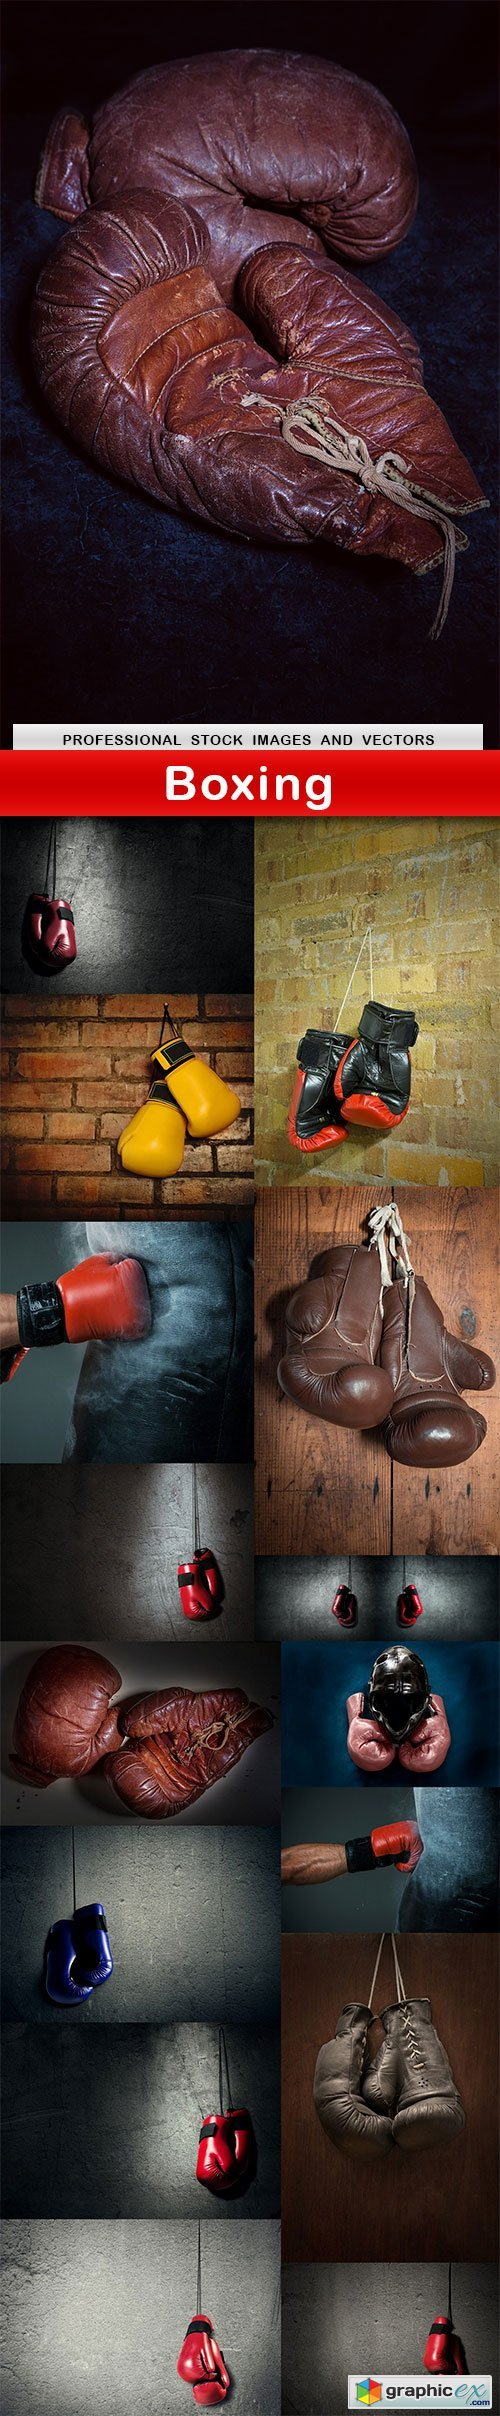 Boxing - 17 UHQ JPEG